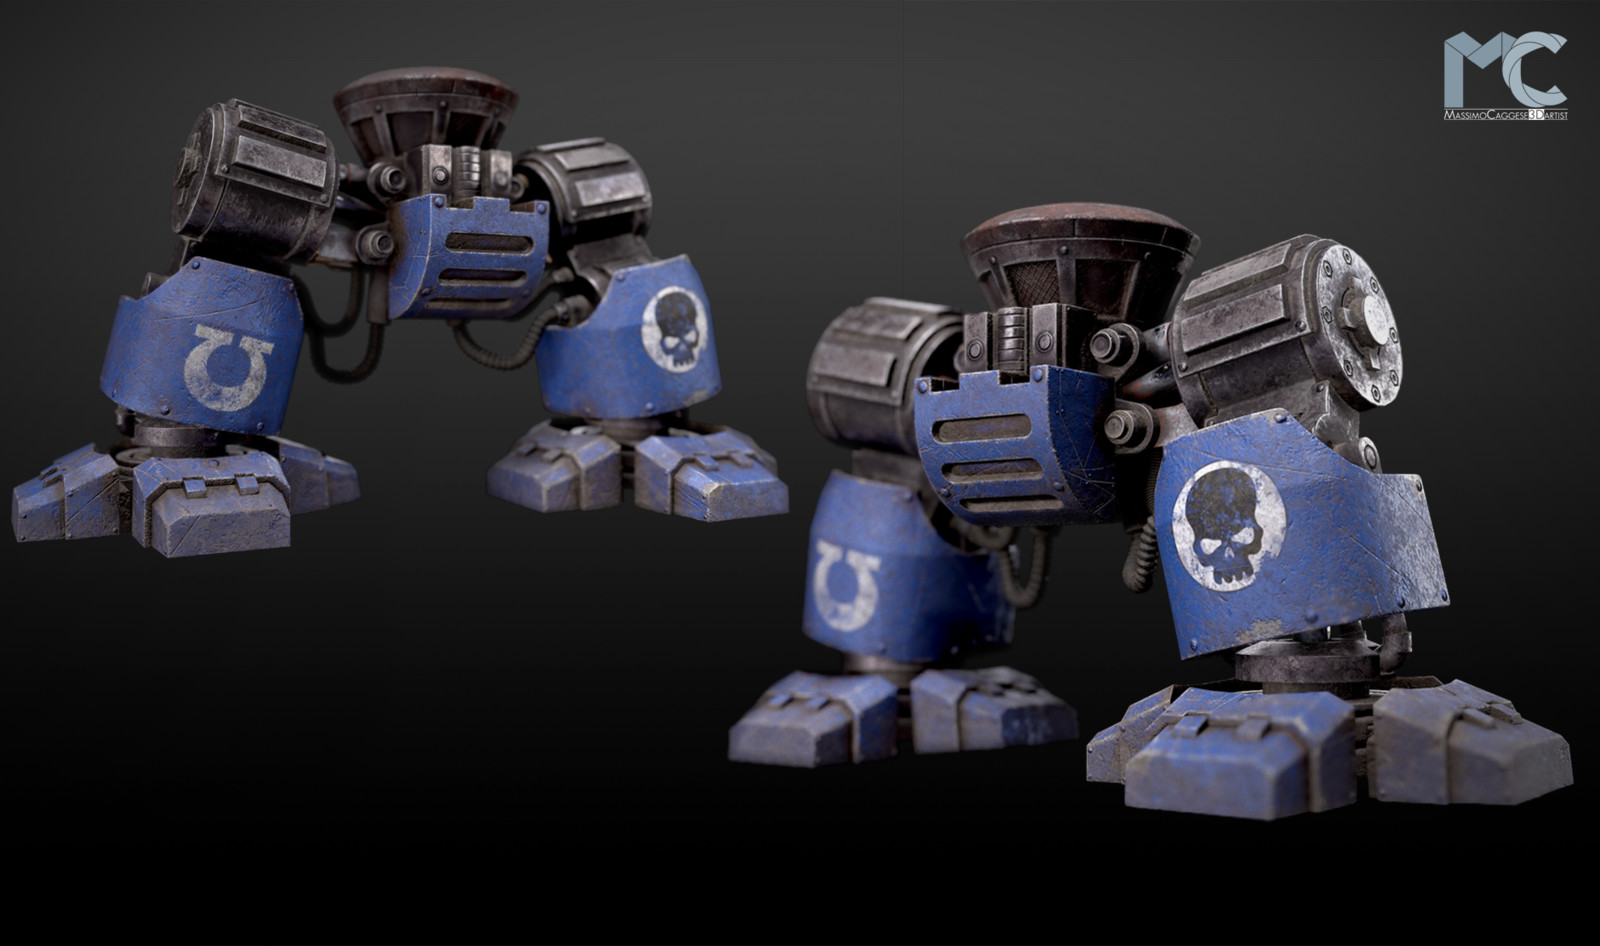 Side view (Marmoset Toolbag 3).